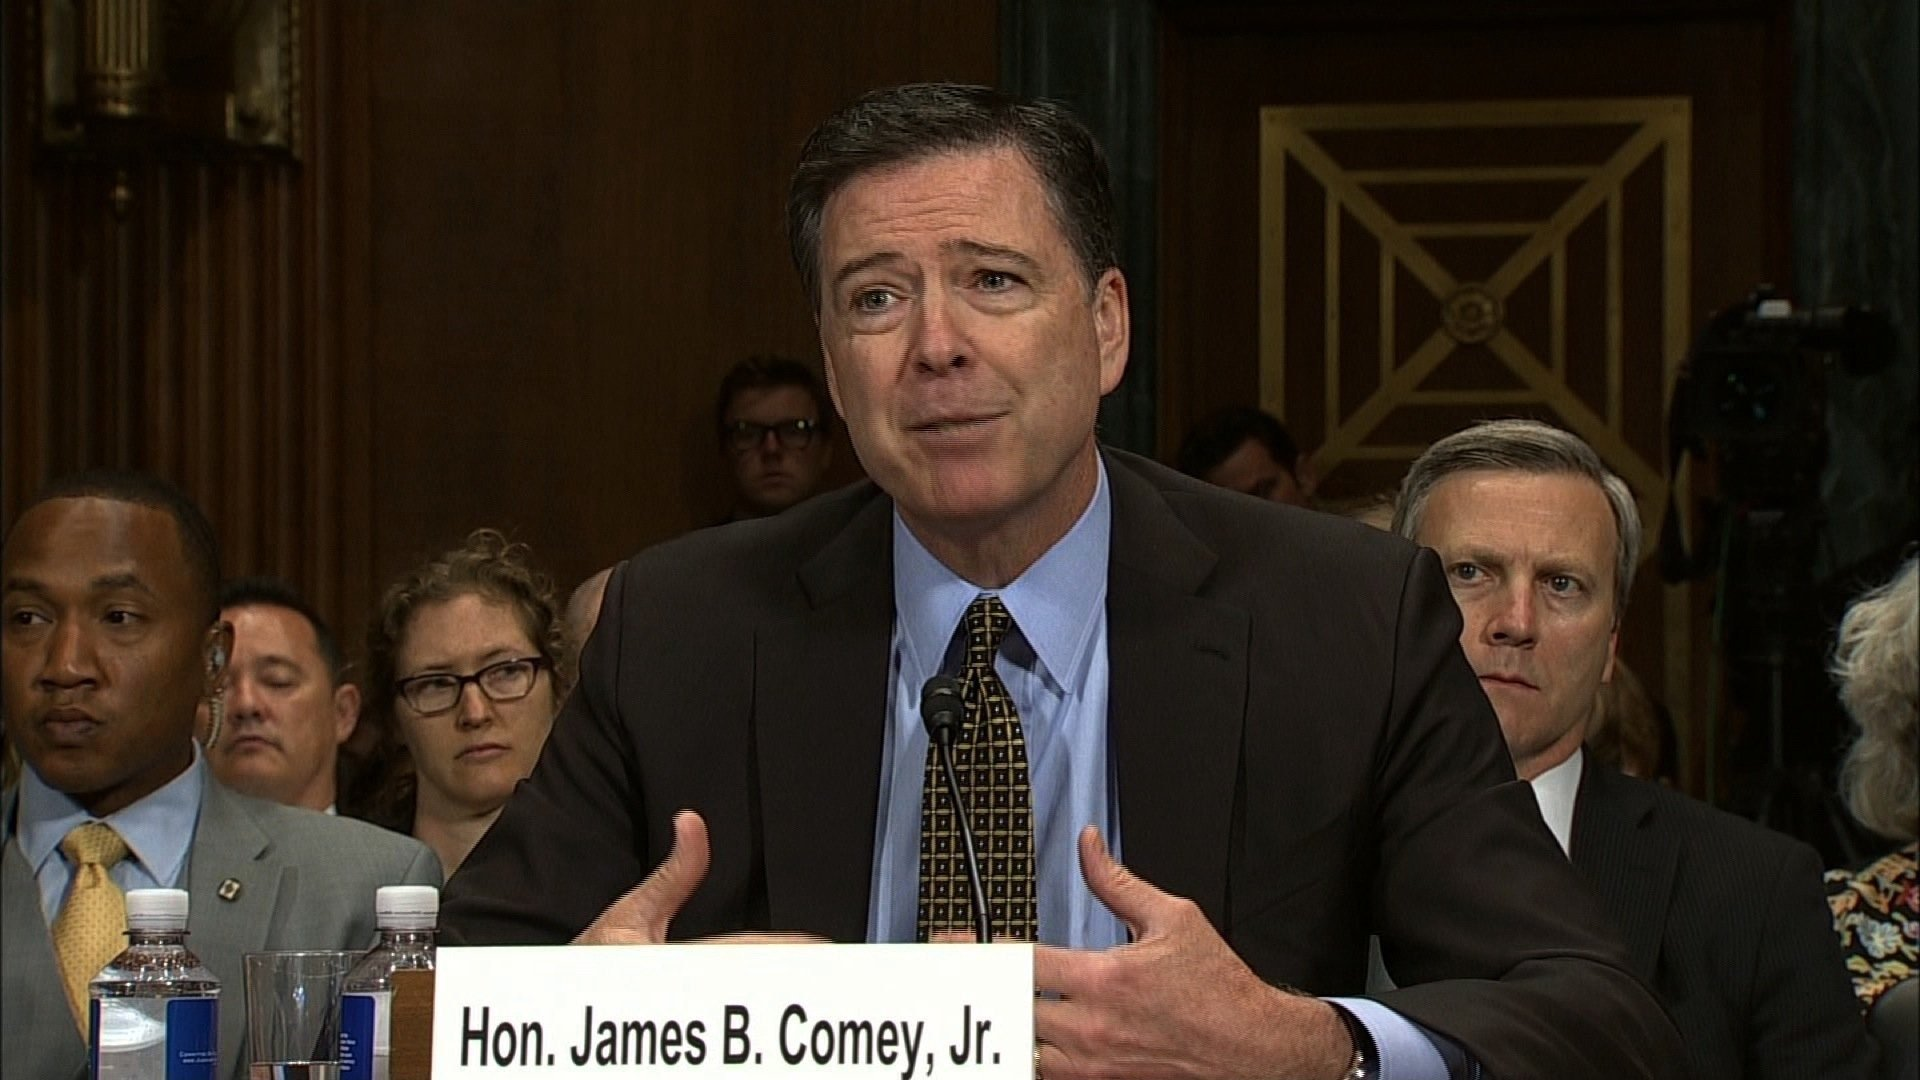 Comey to Testify Trump Strong-Armed Him on Flynn Probe